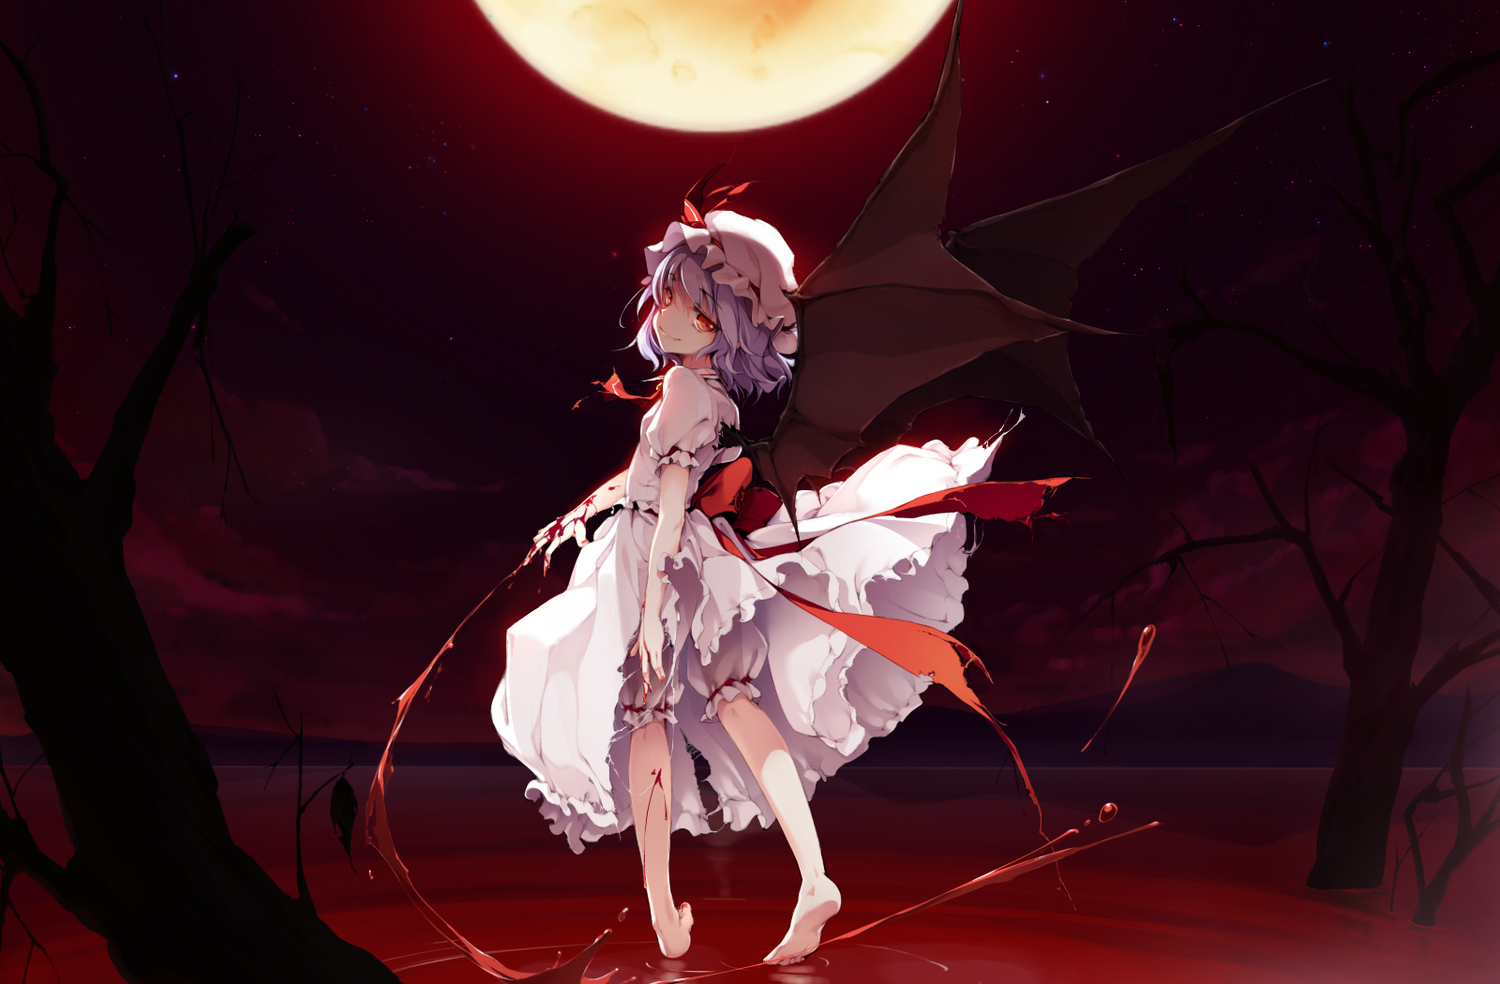 blood dress ke-ta moon red_eyes remilia_scarlet short_hair torn_clothes touhou vampire wings